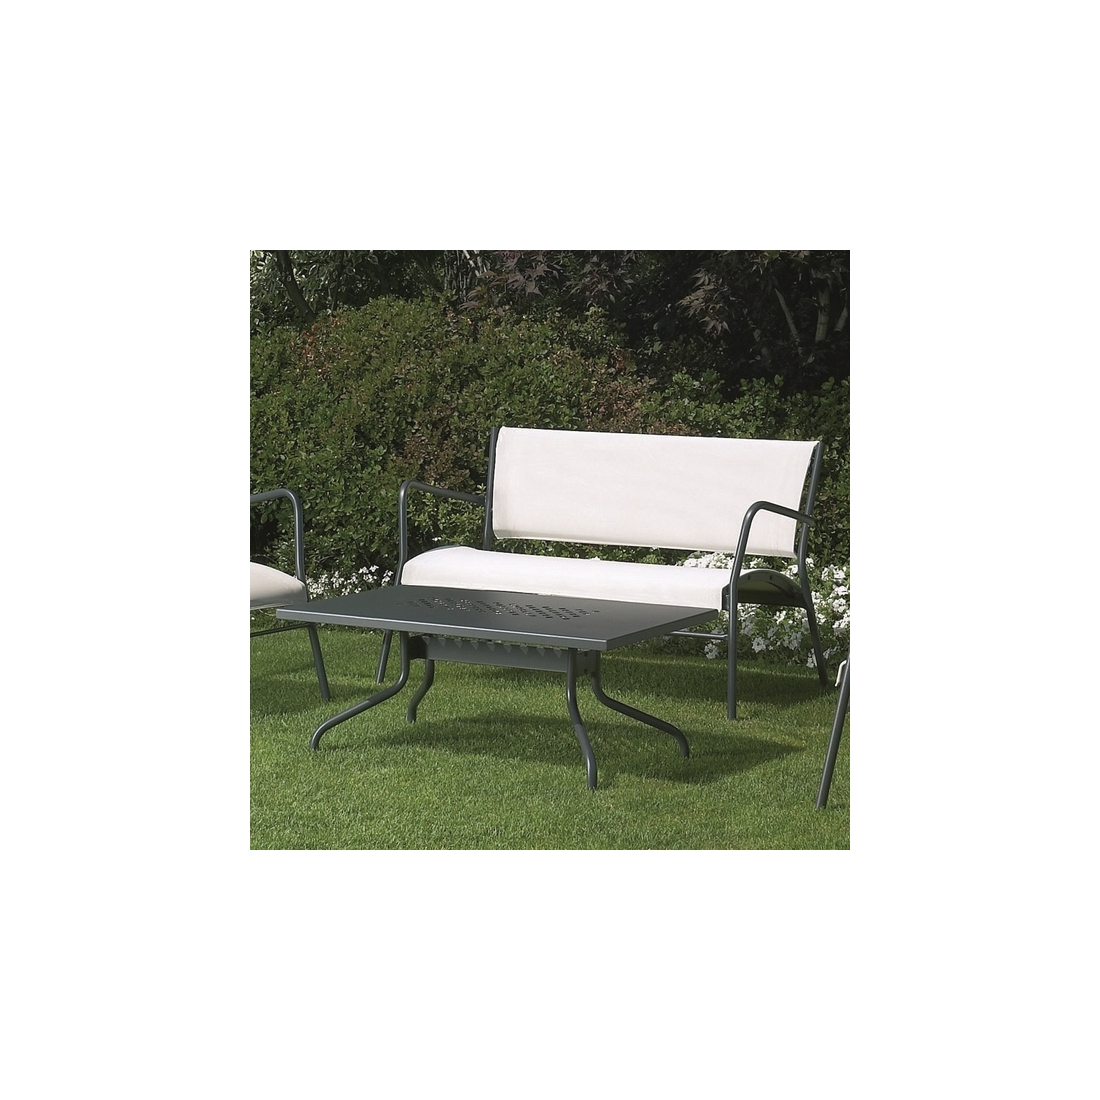 Tables basses de jardin - Table basse de jardin ...